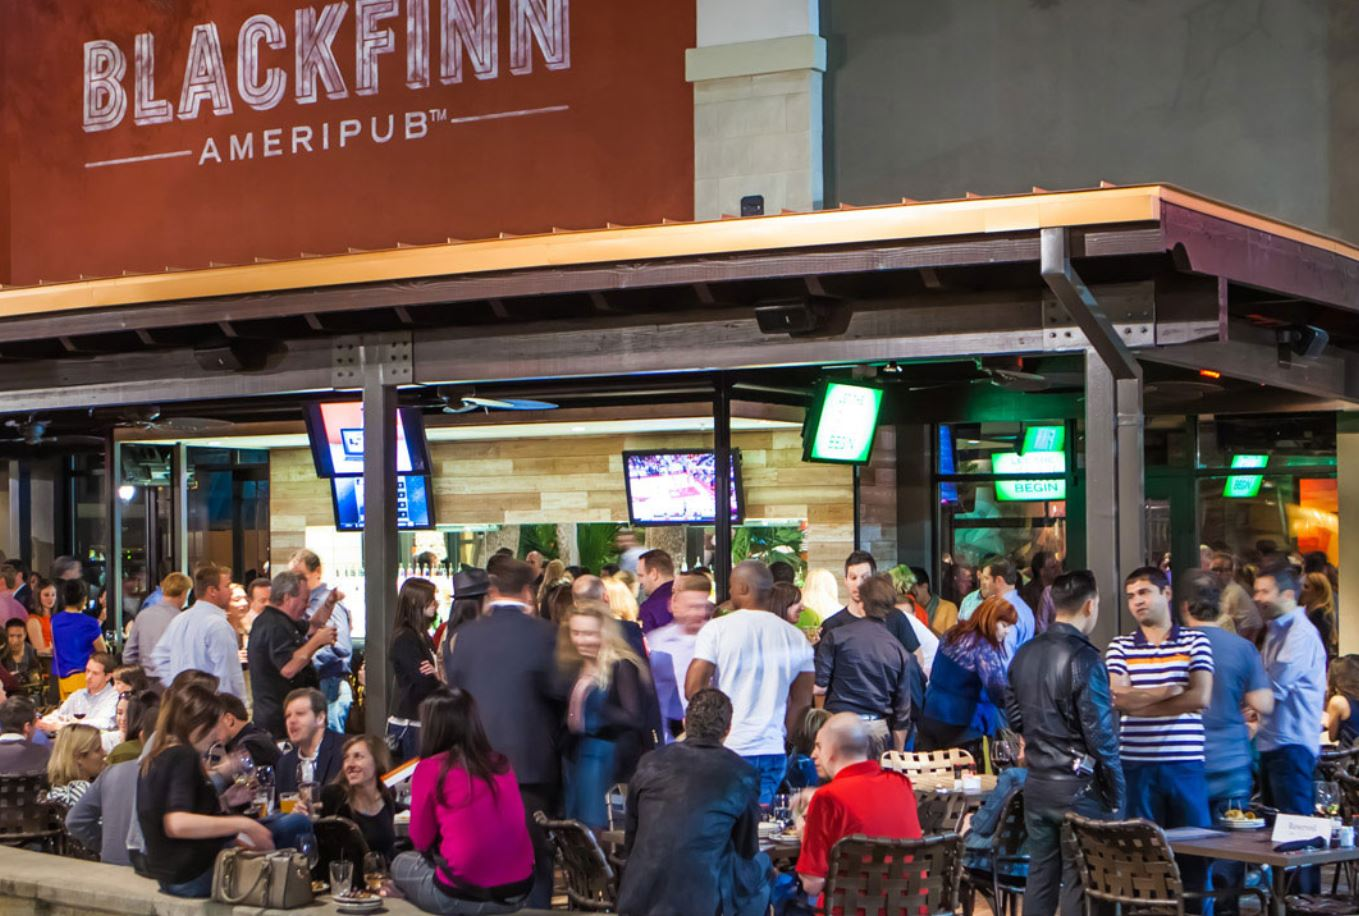 BlackFinn patio